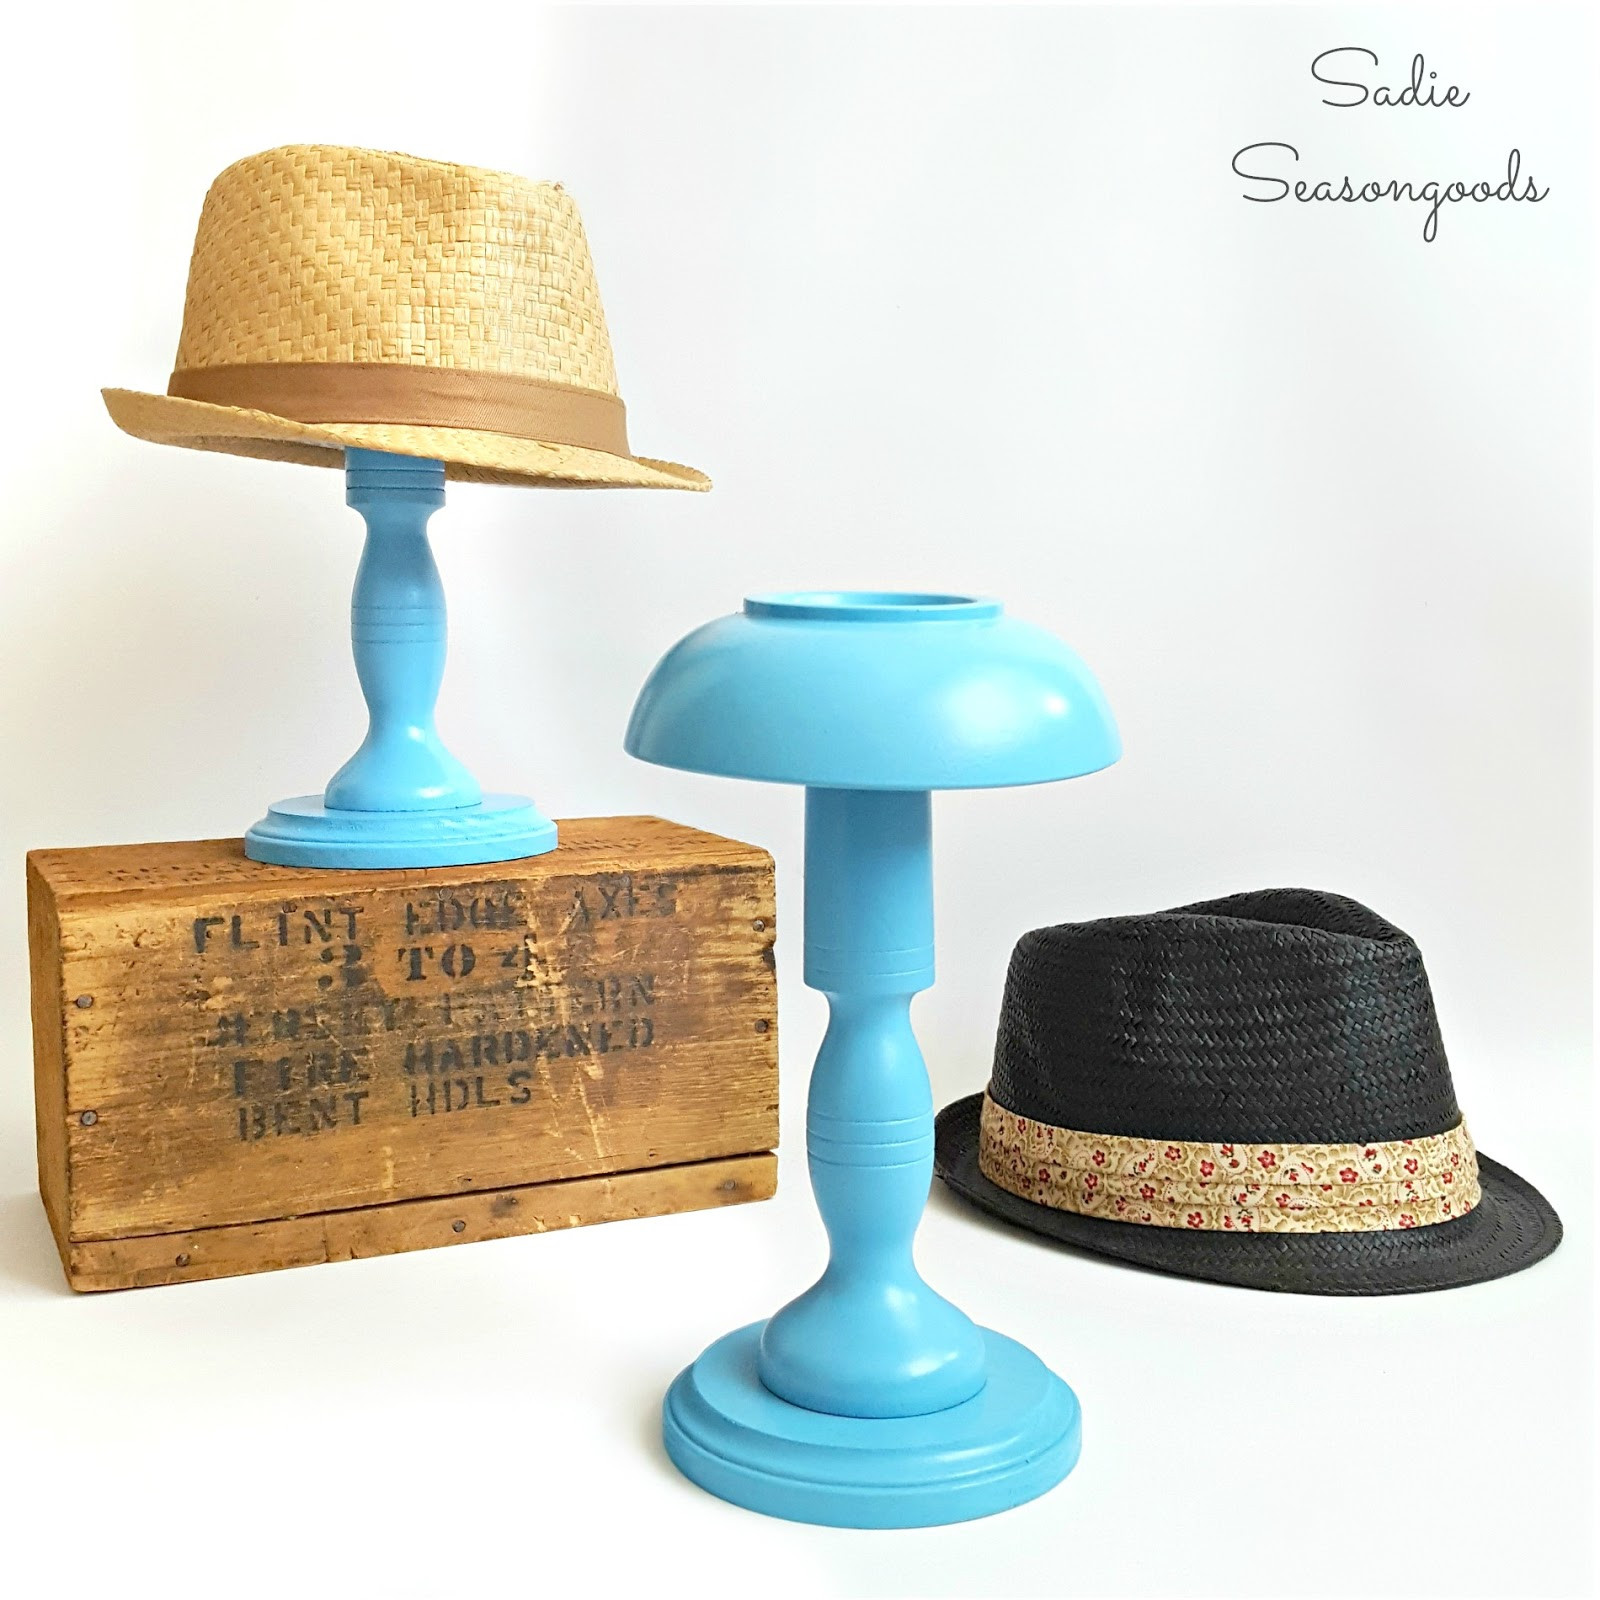 Best ideas about DIY Hat Stand . Save or Pin Homemade and Handcrafted No 37 Now.